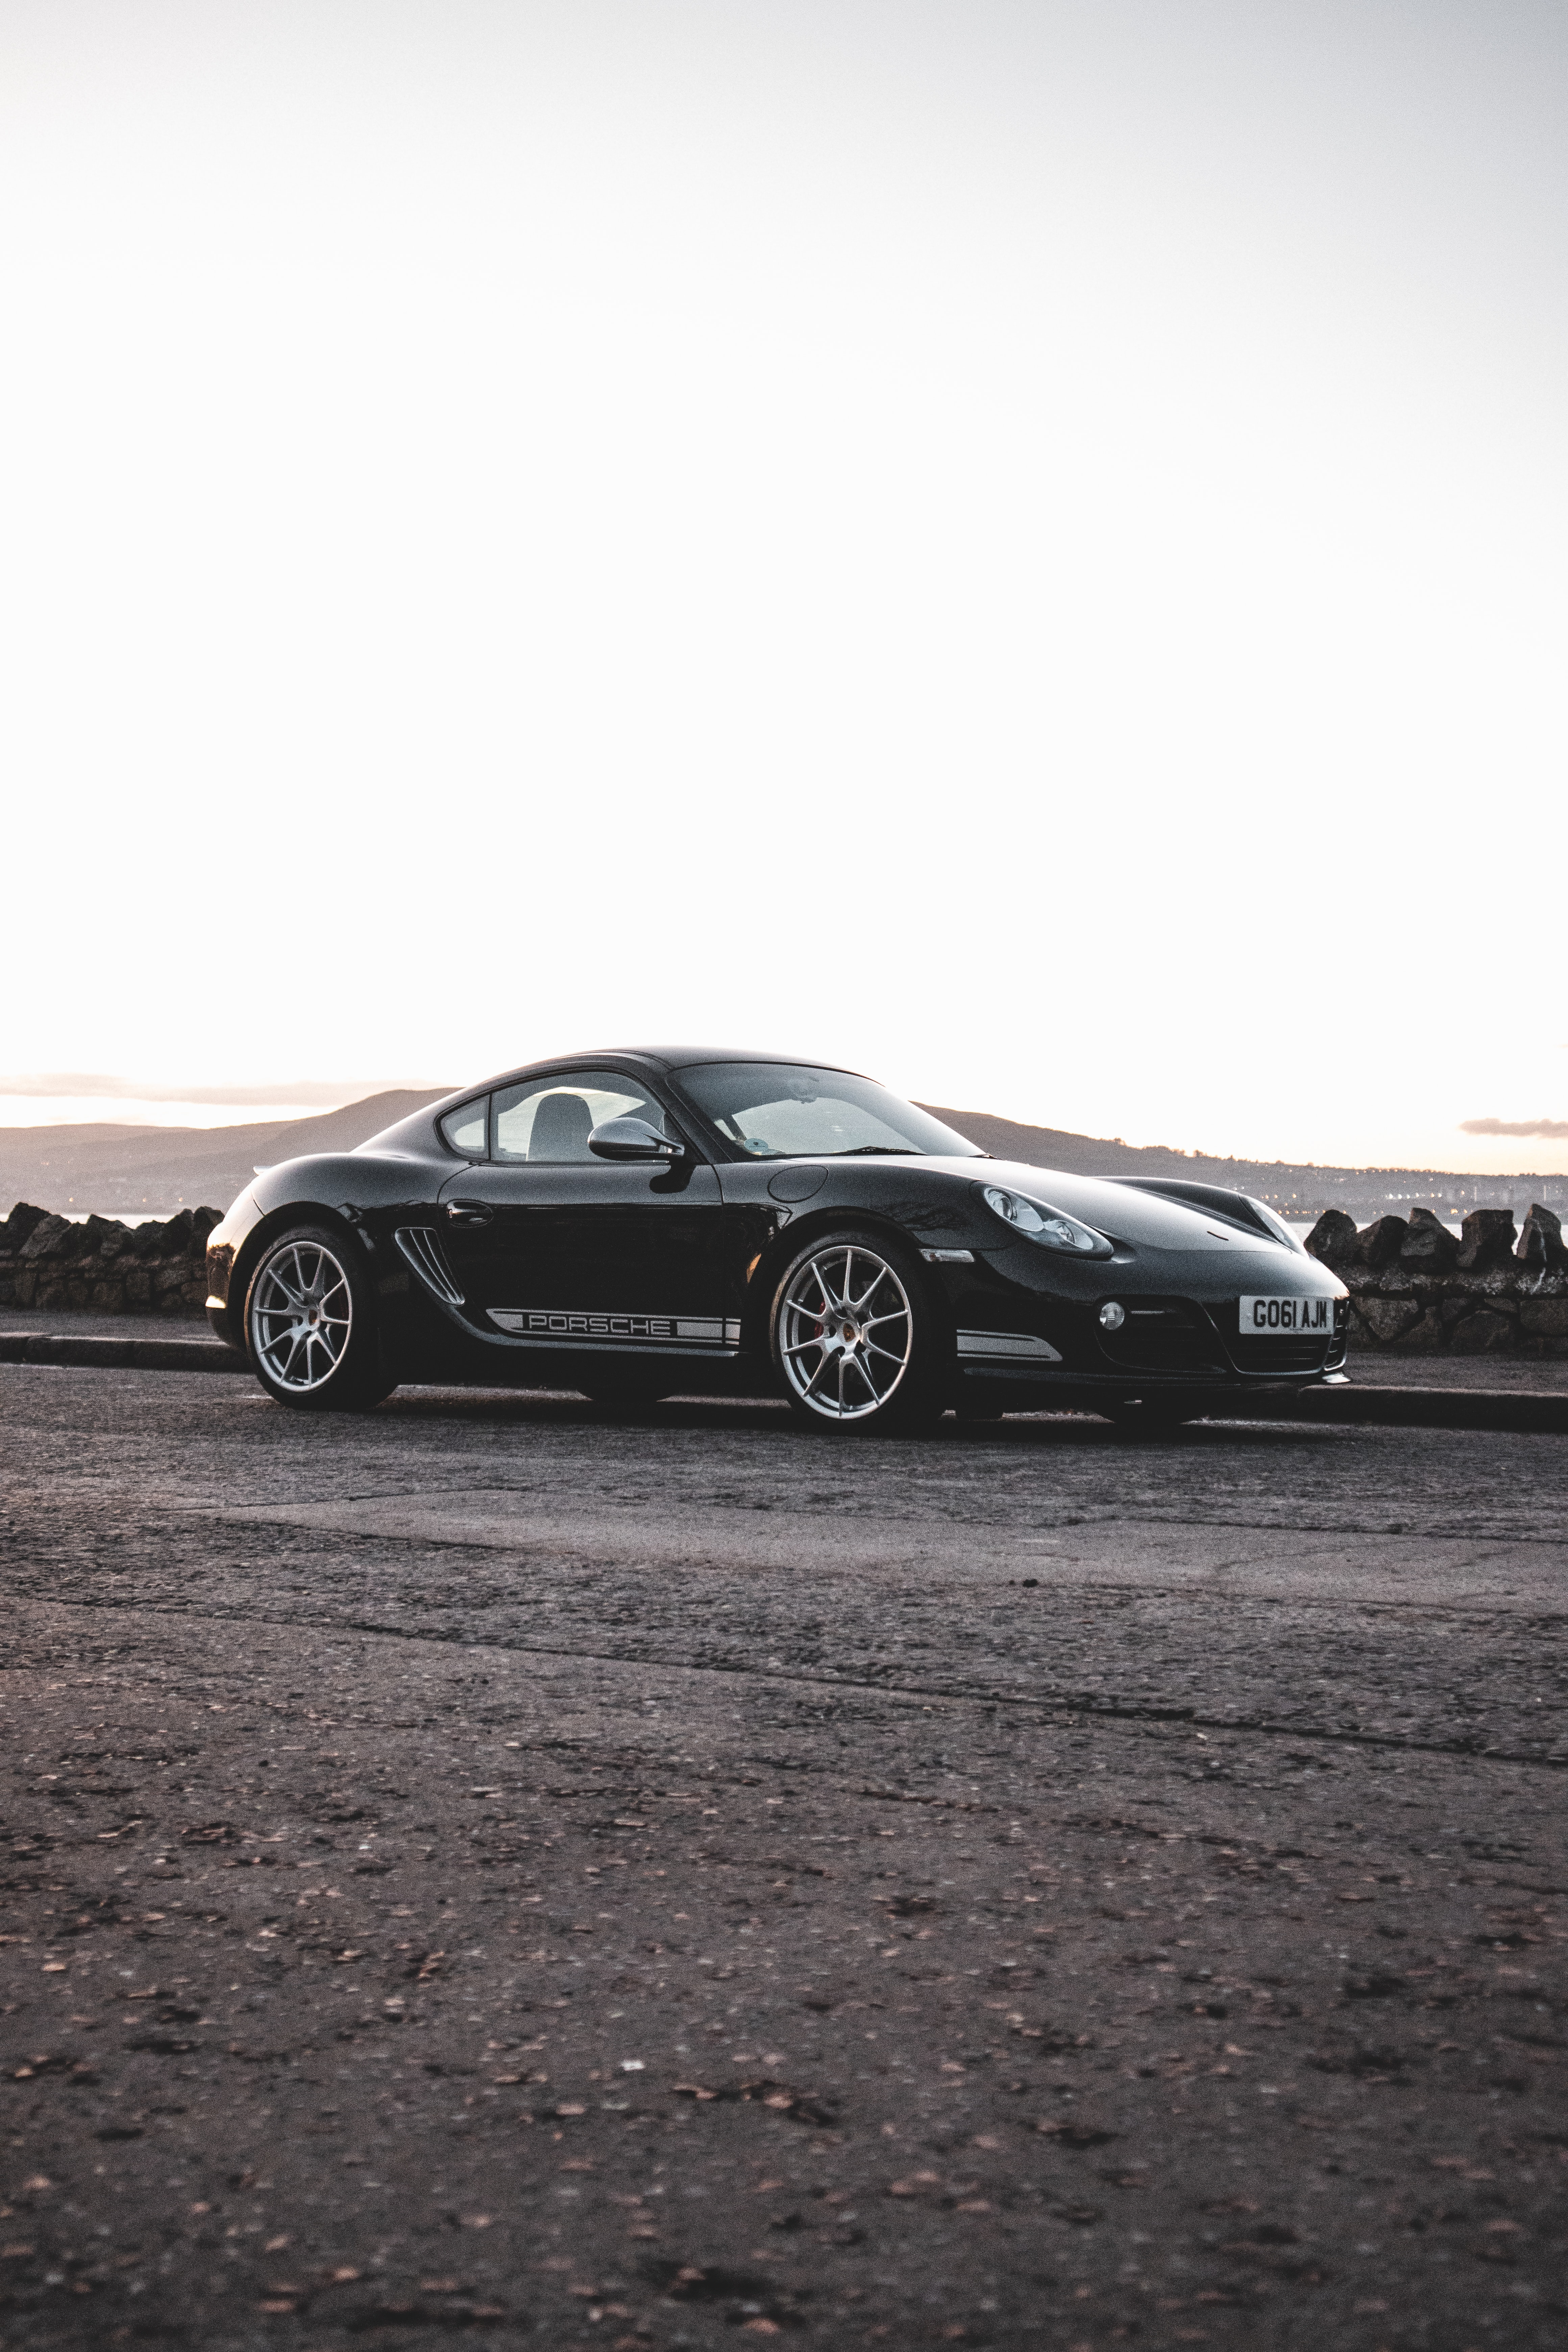 145904 download wallpaper Porsche, Sports, Cars, Car, Sports Car, Side View, Porsche Cayman 987 R screensavers and pictures for free